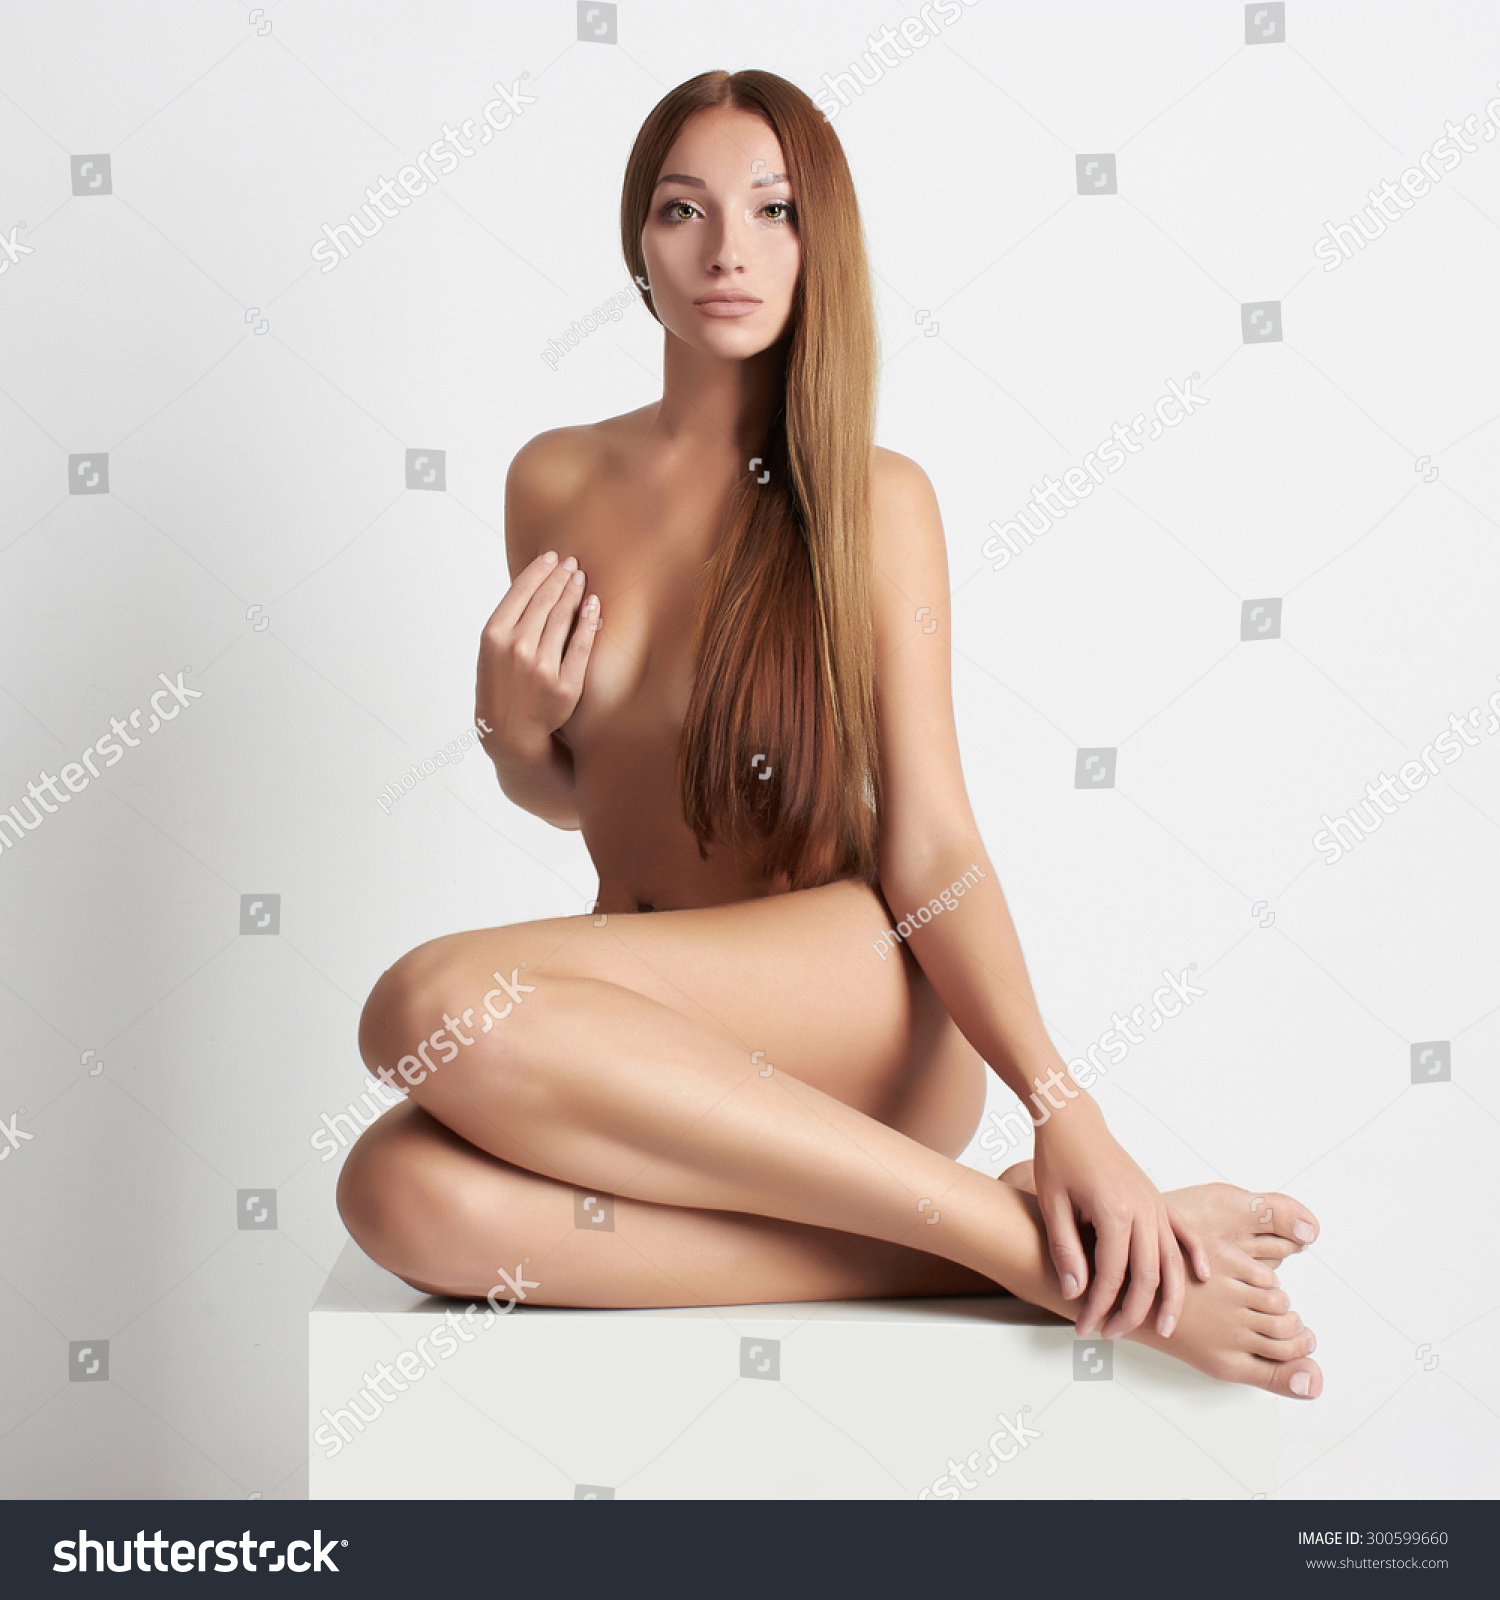 Very long hair girls naked